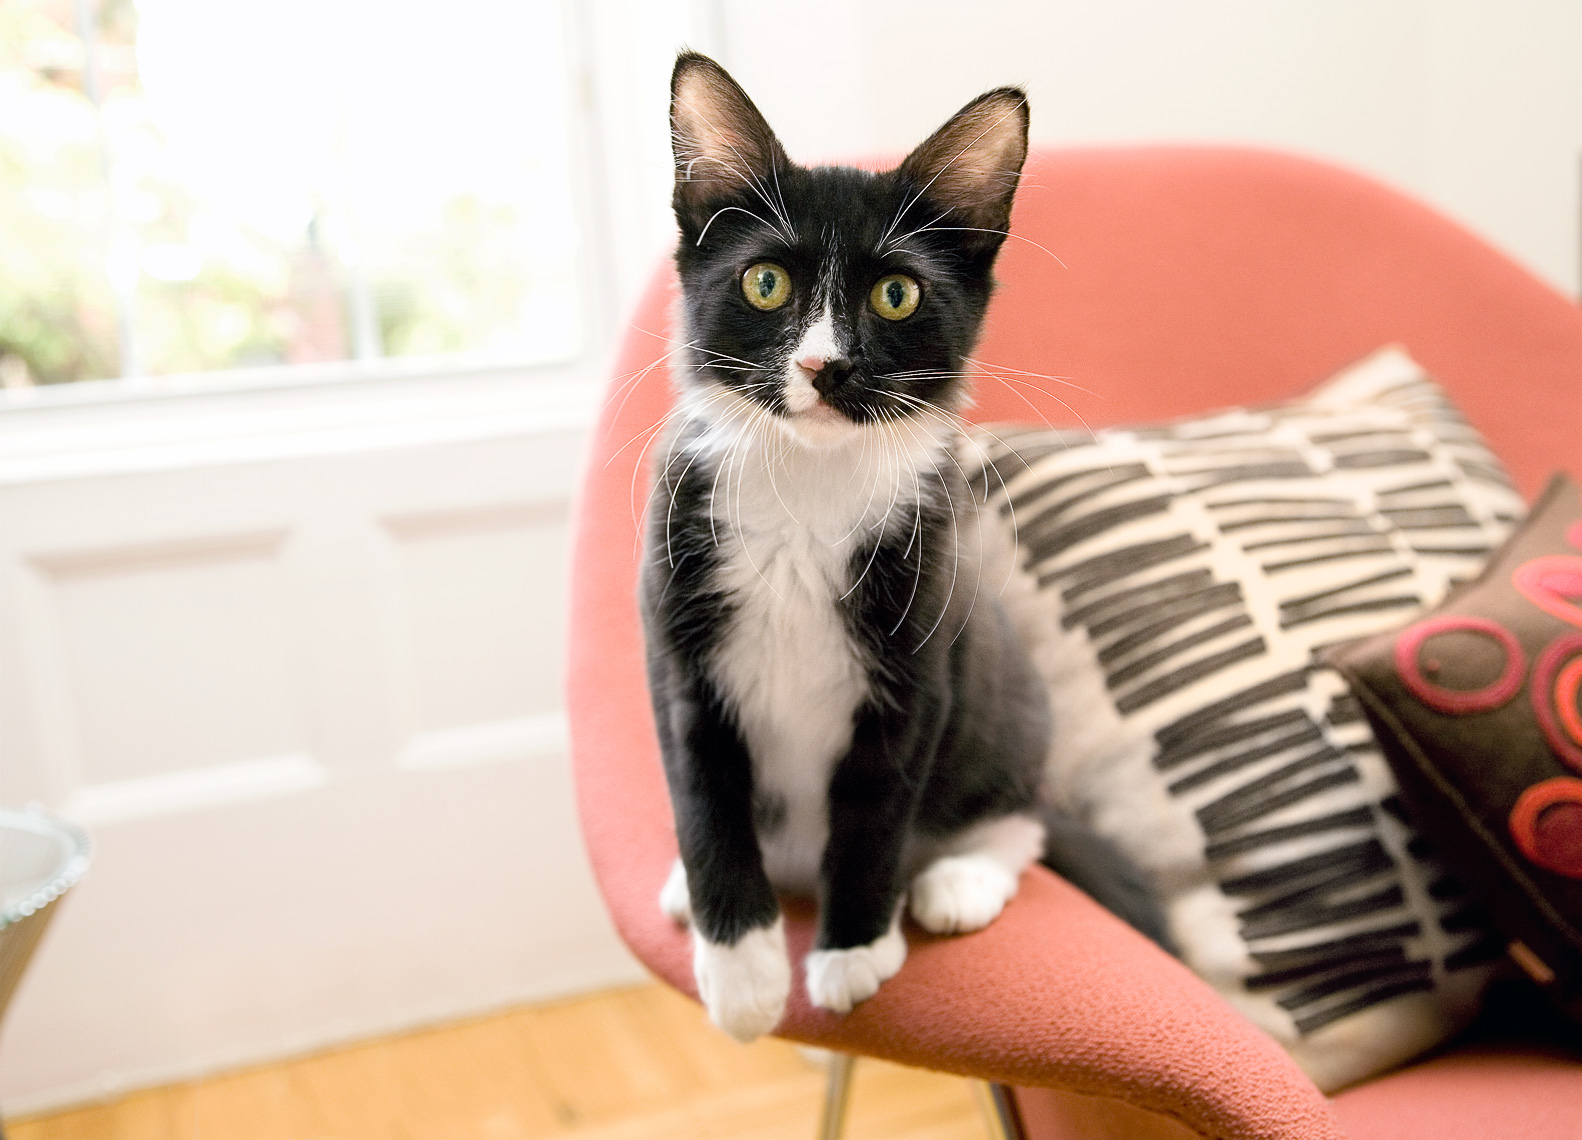 Kitten on chair